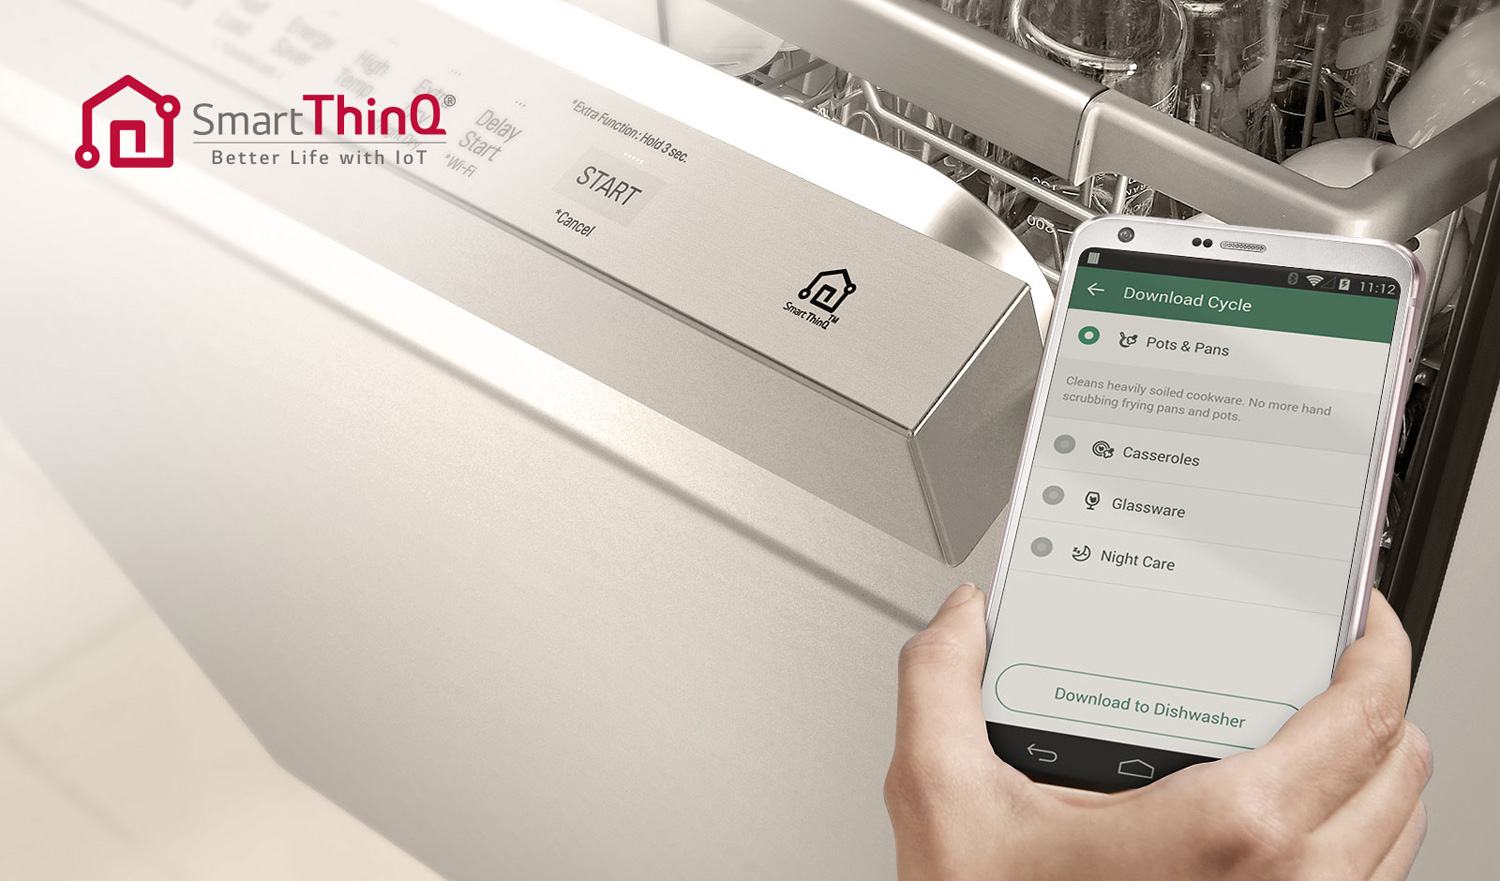 LG-Dishwasher_Smart-ThinQ-1